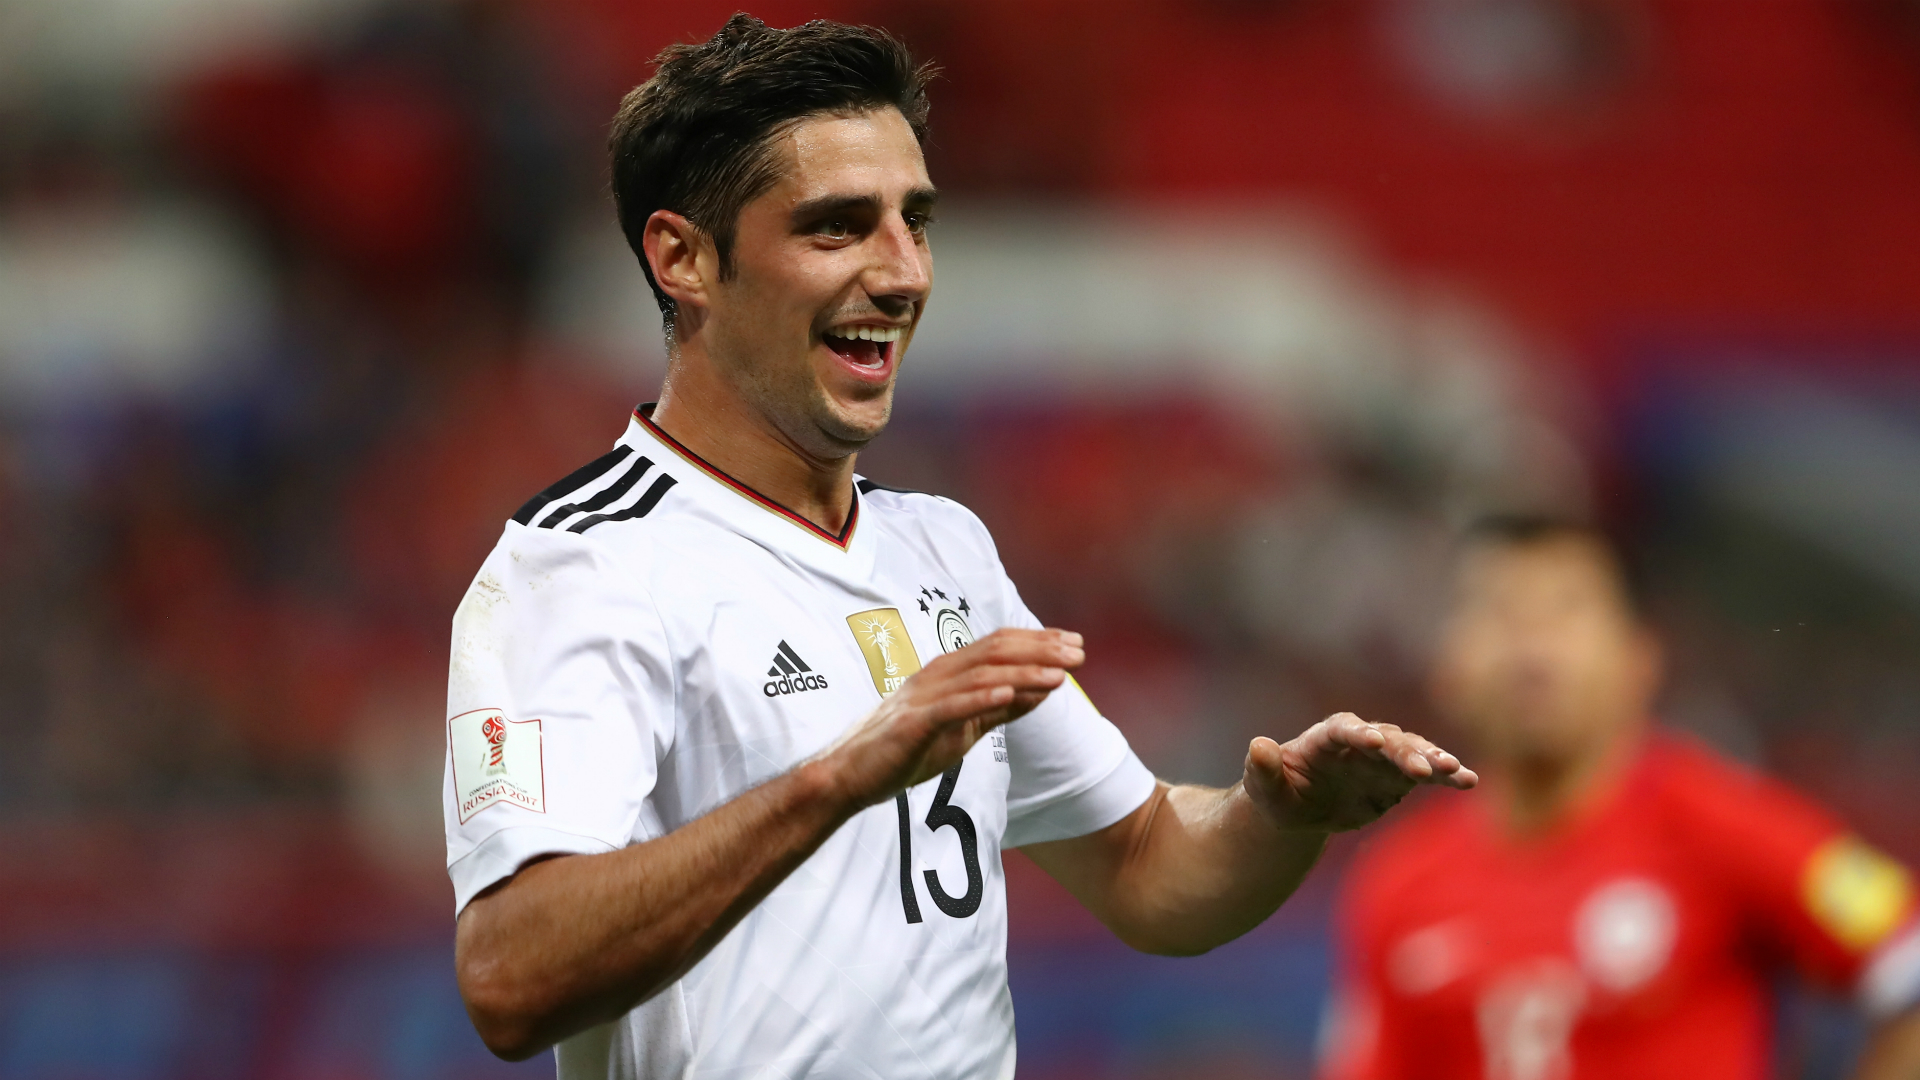 Low lauds'excellent Stindl after Germany draw